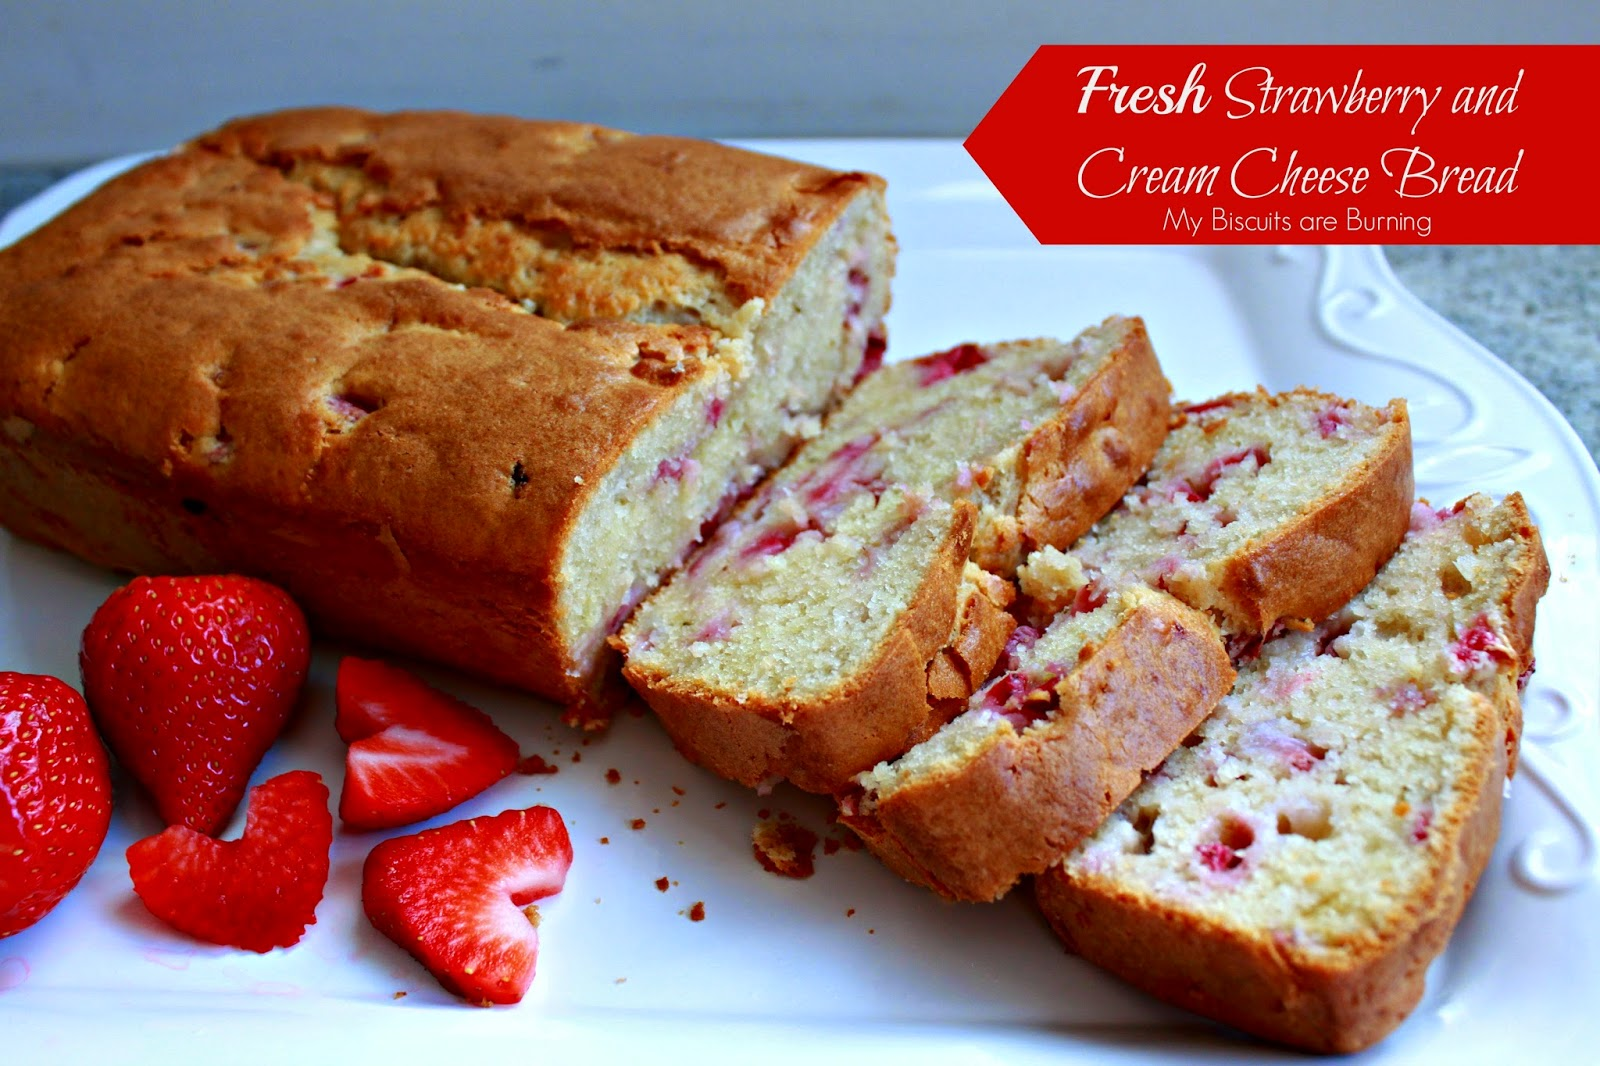 My Biscuits are Burning: Fresh Strawberry Cream Cheese Bread